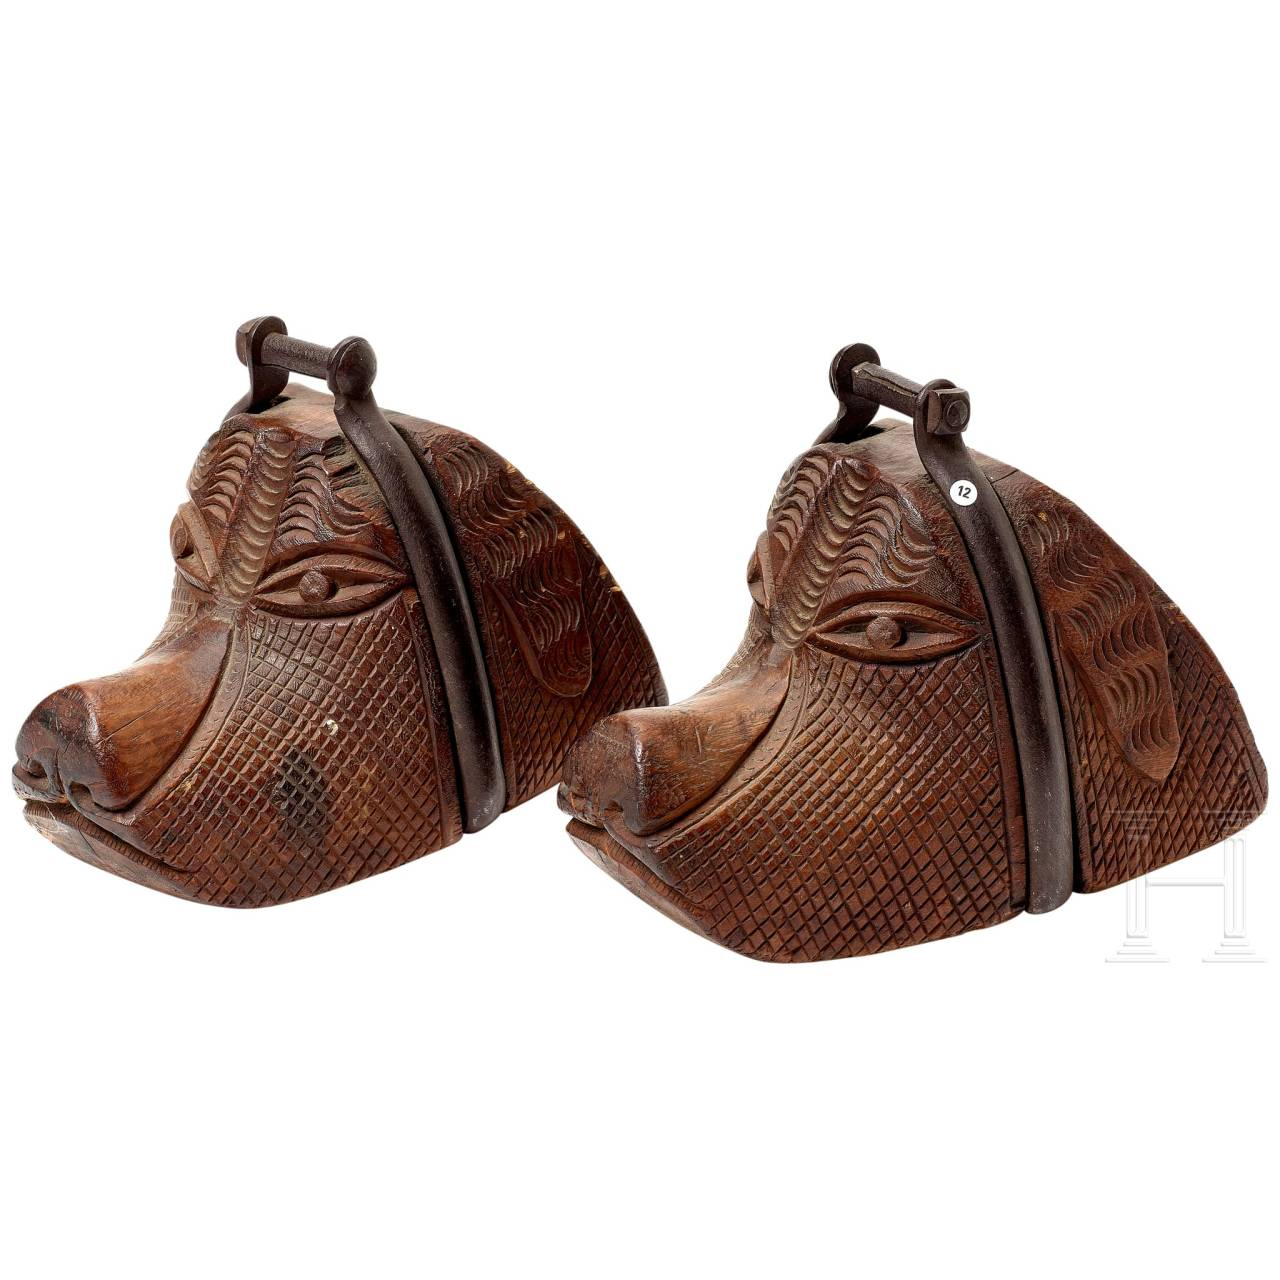 A pair of South American stirrups in the shape of a dog's head, 19th century